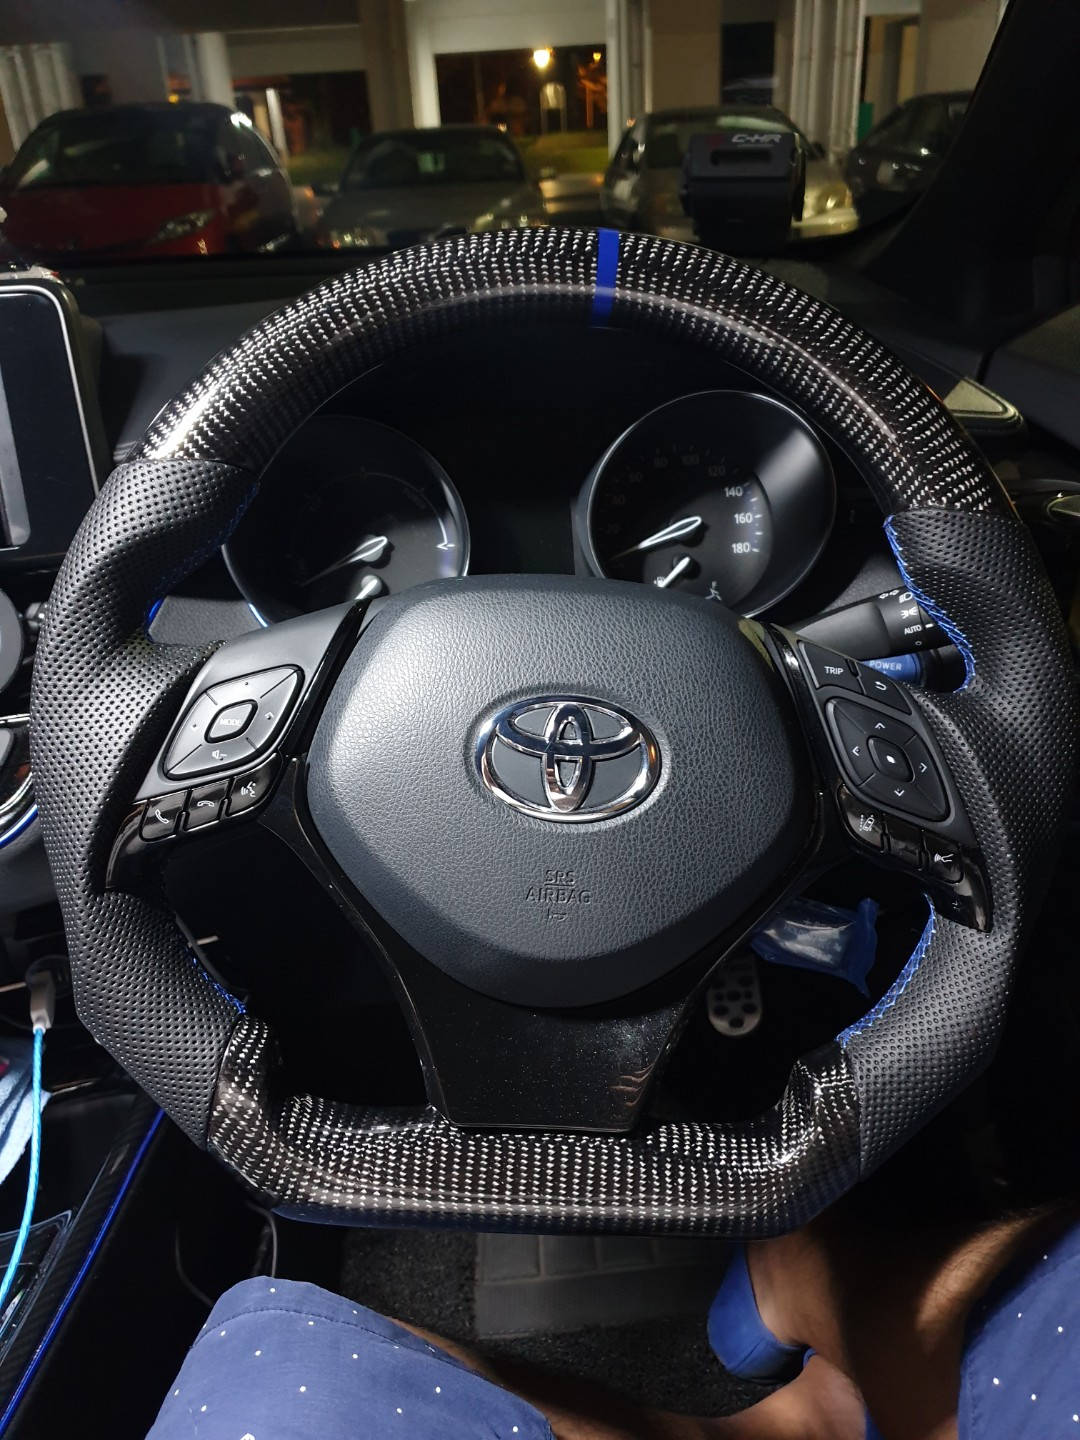 hight resolution of toyota c hr steering wheel trim cover black chr car accessories accessories on carousell